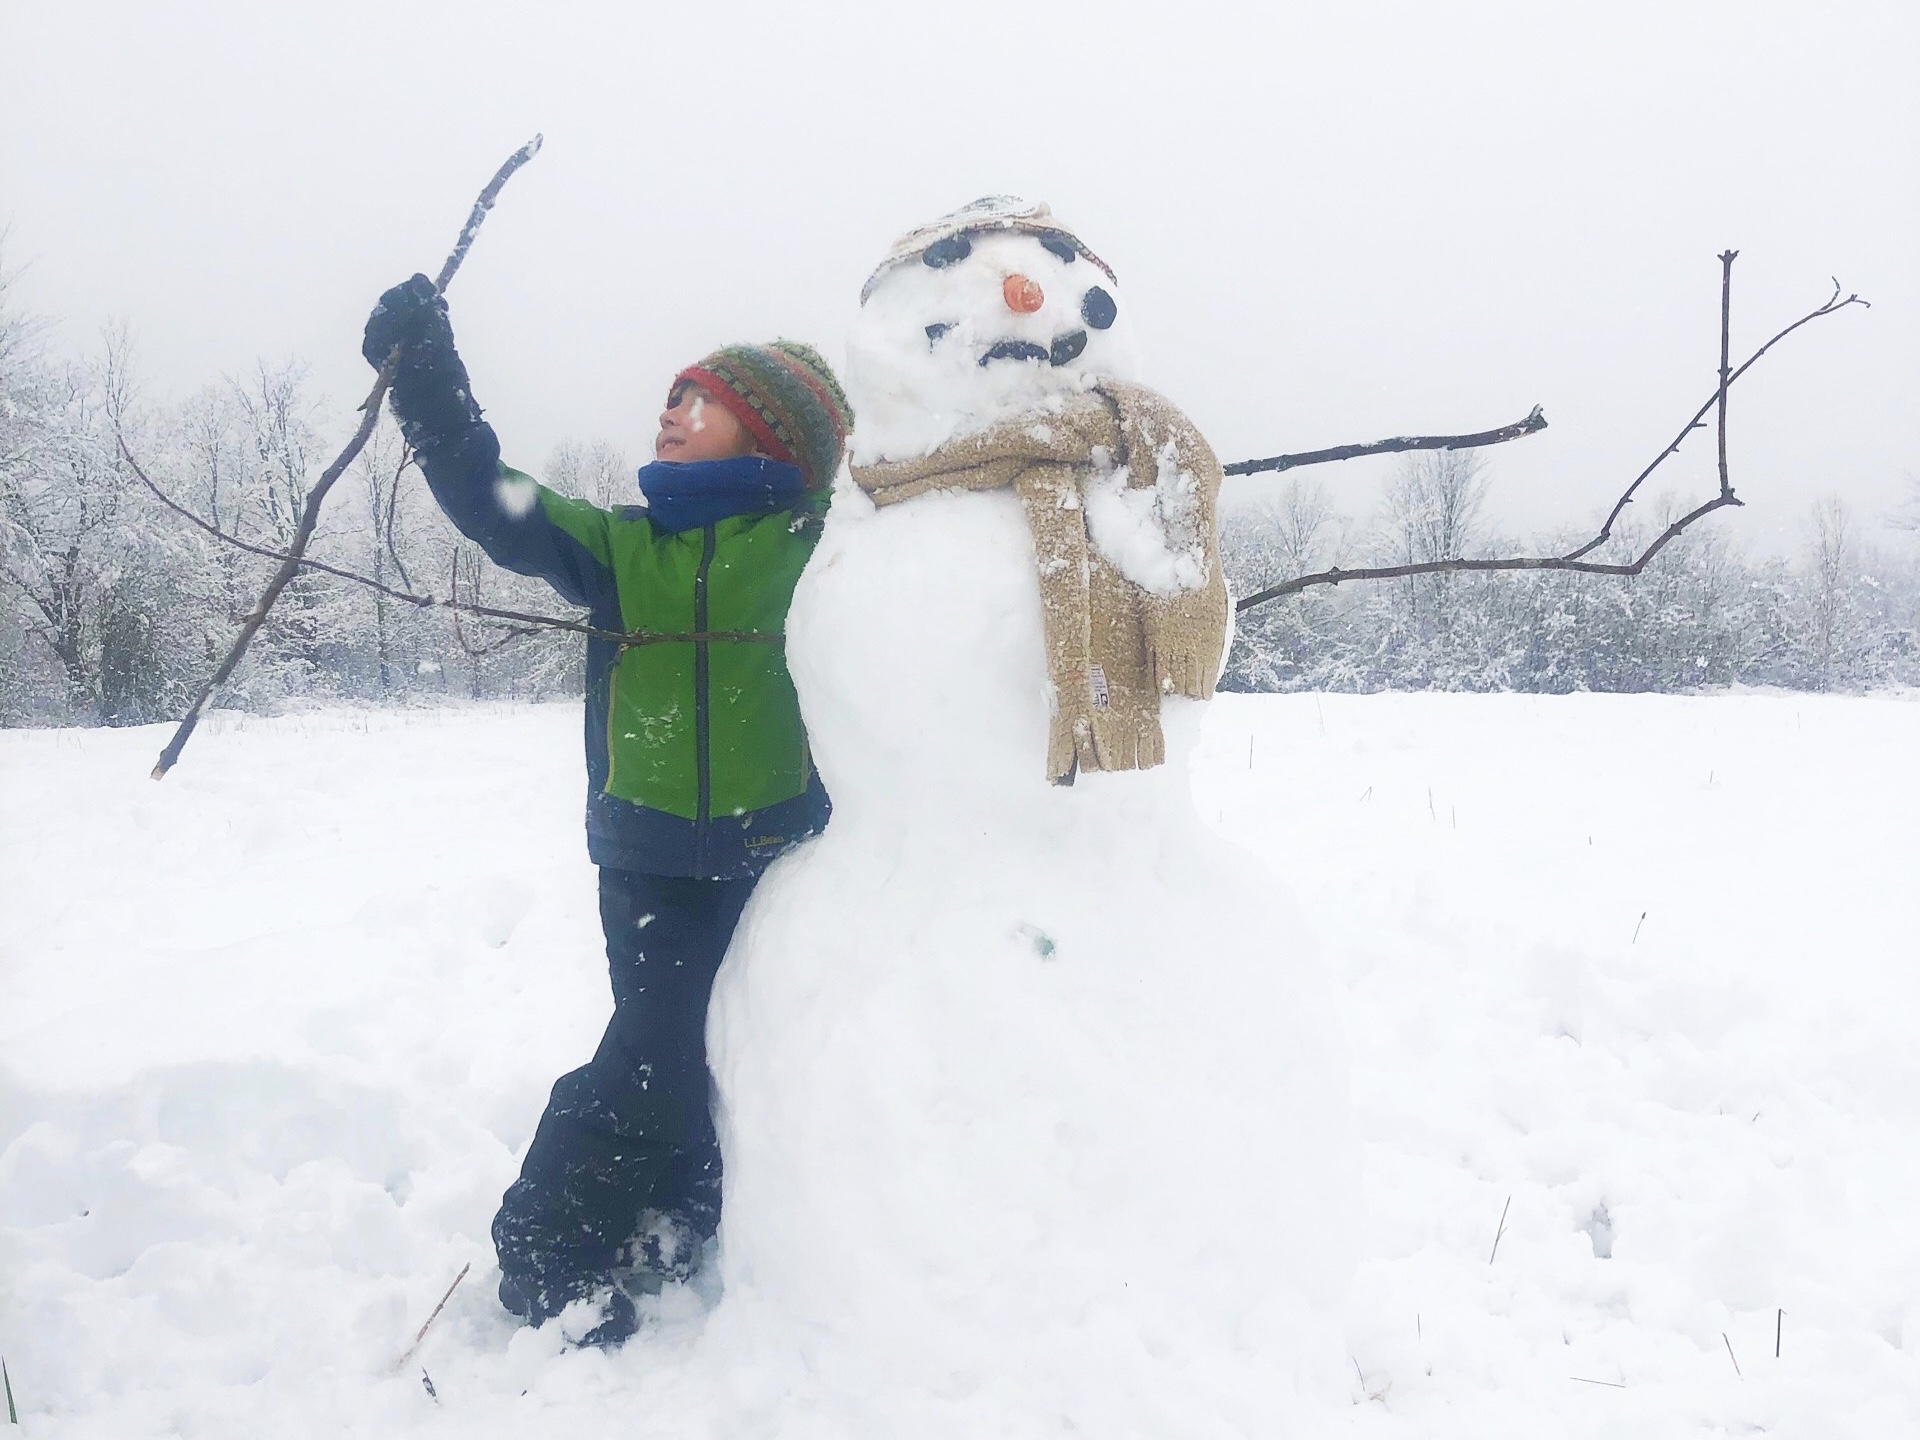 Winter came early this year: November 14th and the first snowman of the season